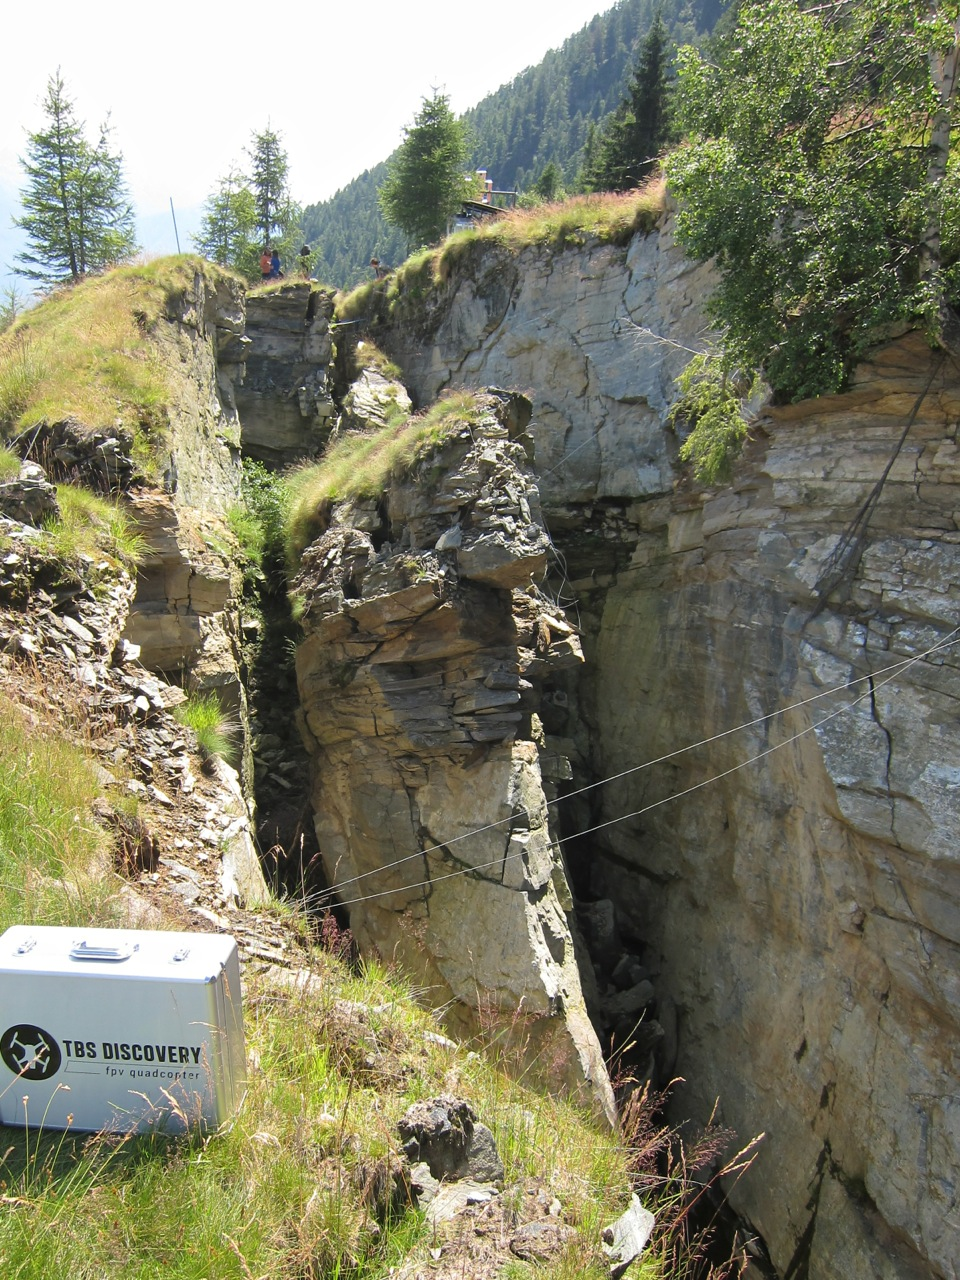 My Discovery case next to the cracks at the rupture zone of the landslide. The metal wires are crack meters.